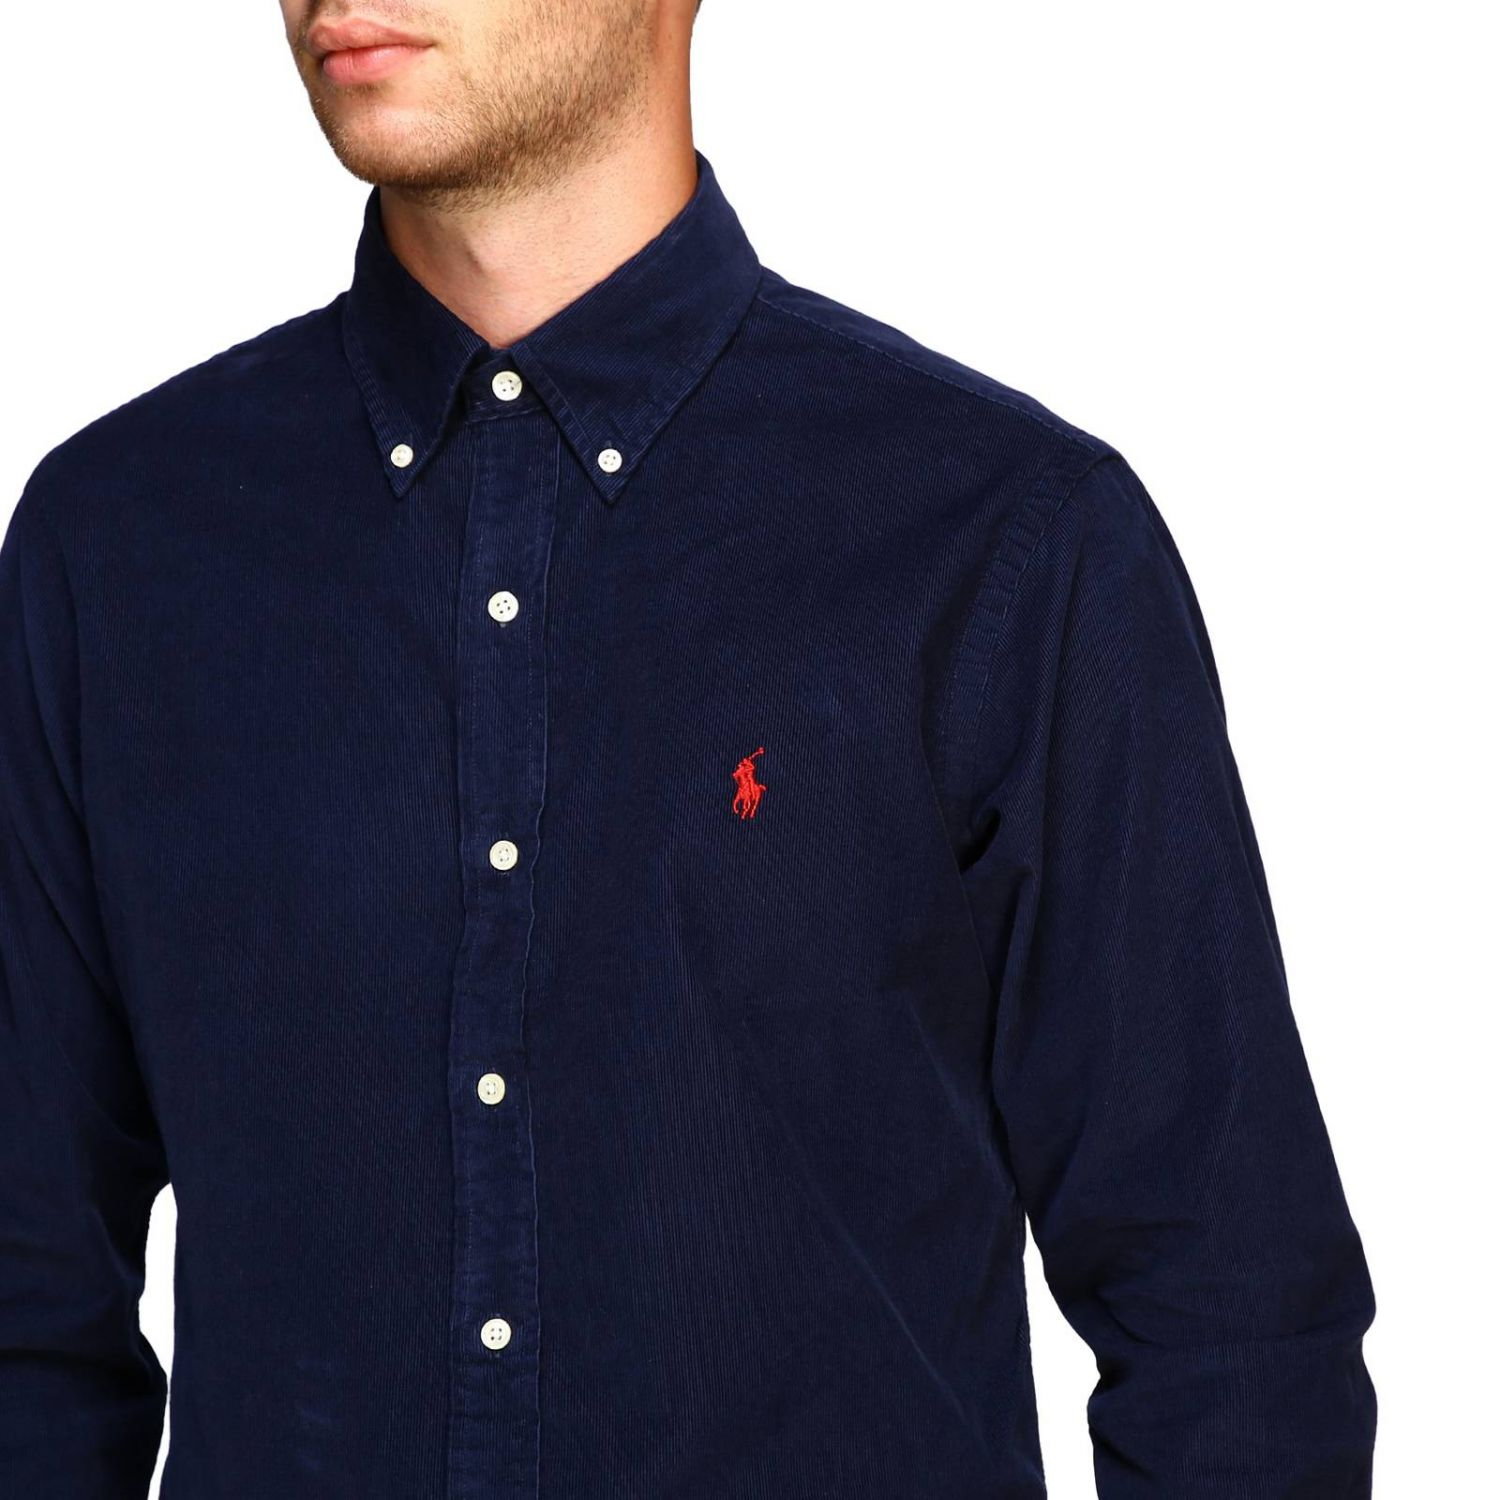 Custom-fit ribbed shirt with button-down collar and Polo Ralph Lauren logo blue 5